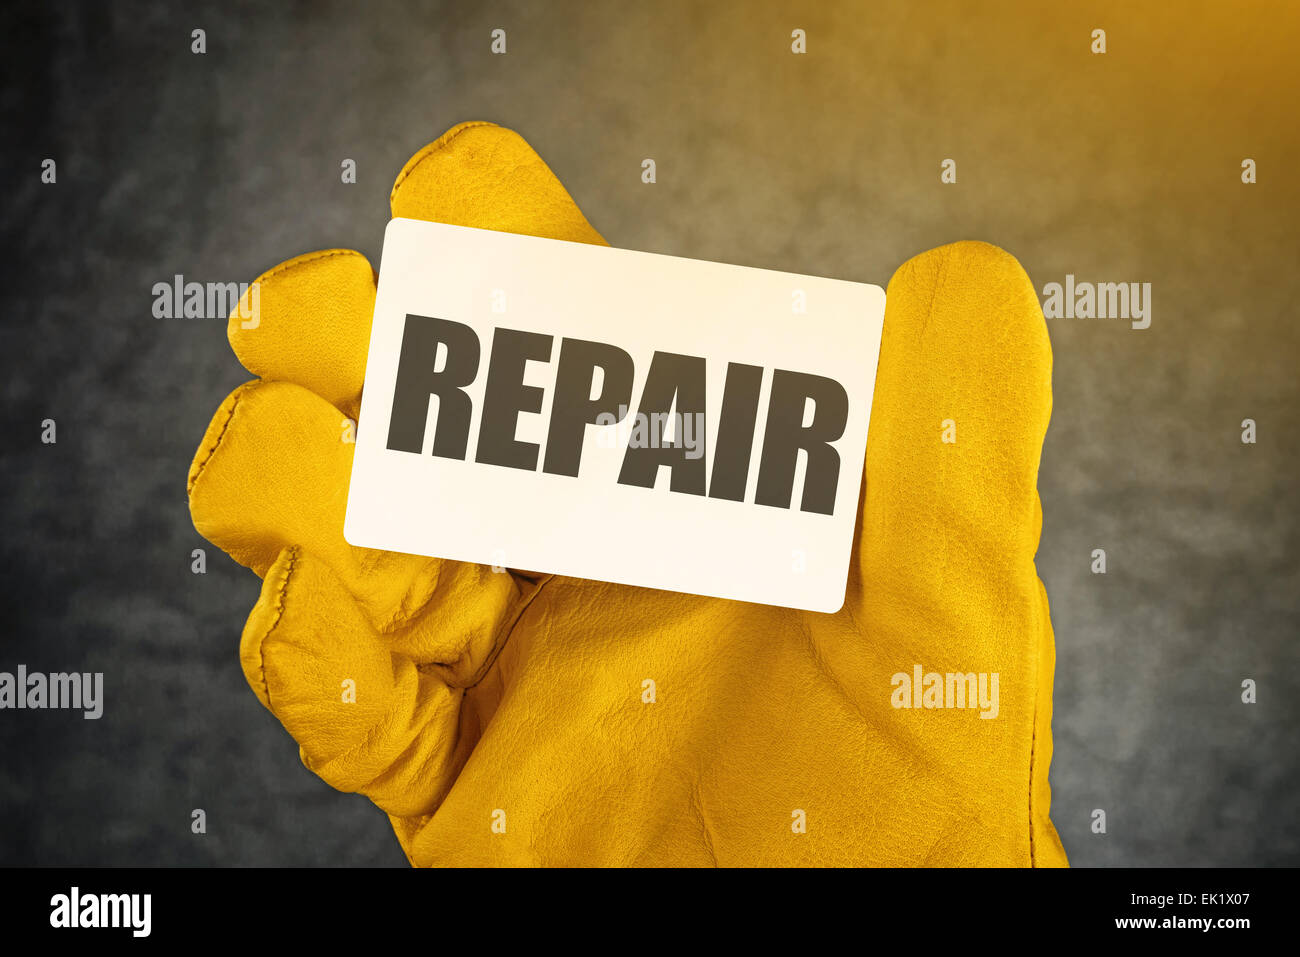 Repair on Business Card, Male Hand in Yellow Leather Construction Working Protective Gloves Holding Card with Rounded Stock Photo